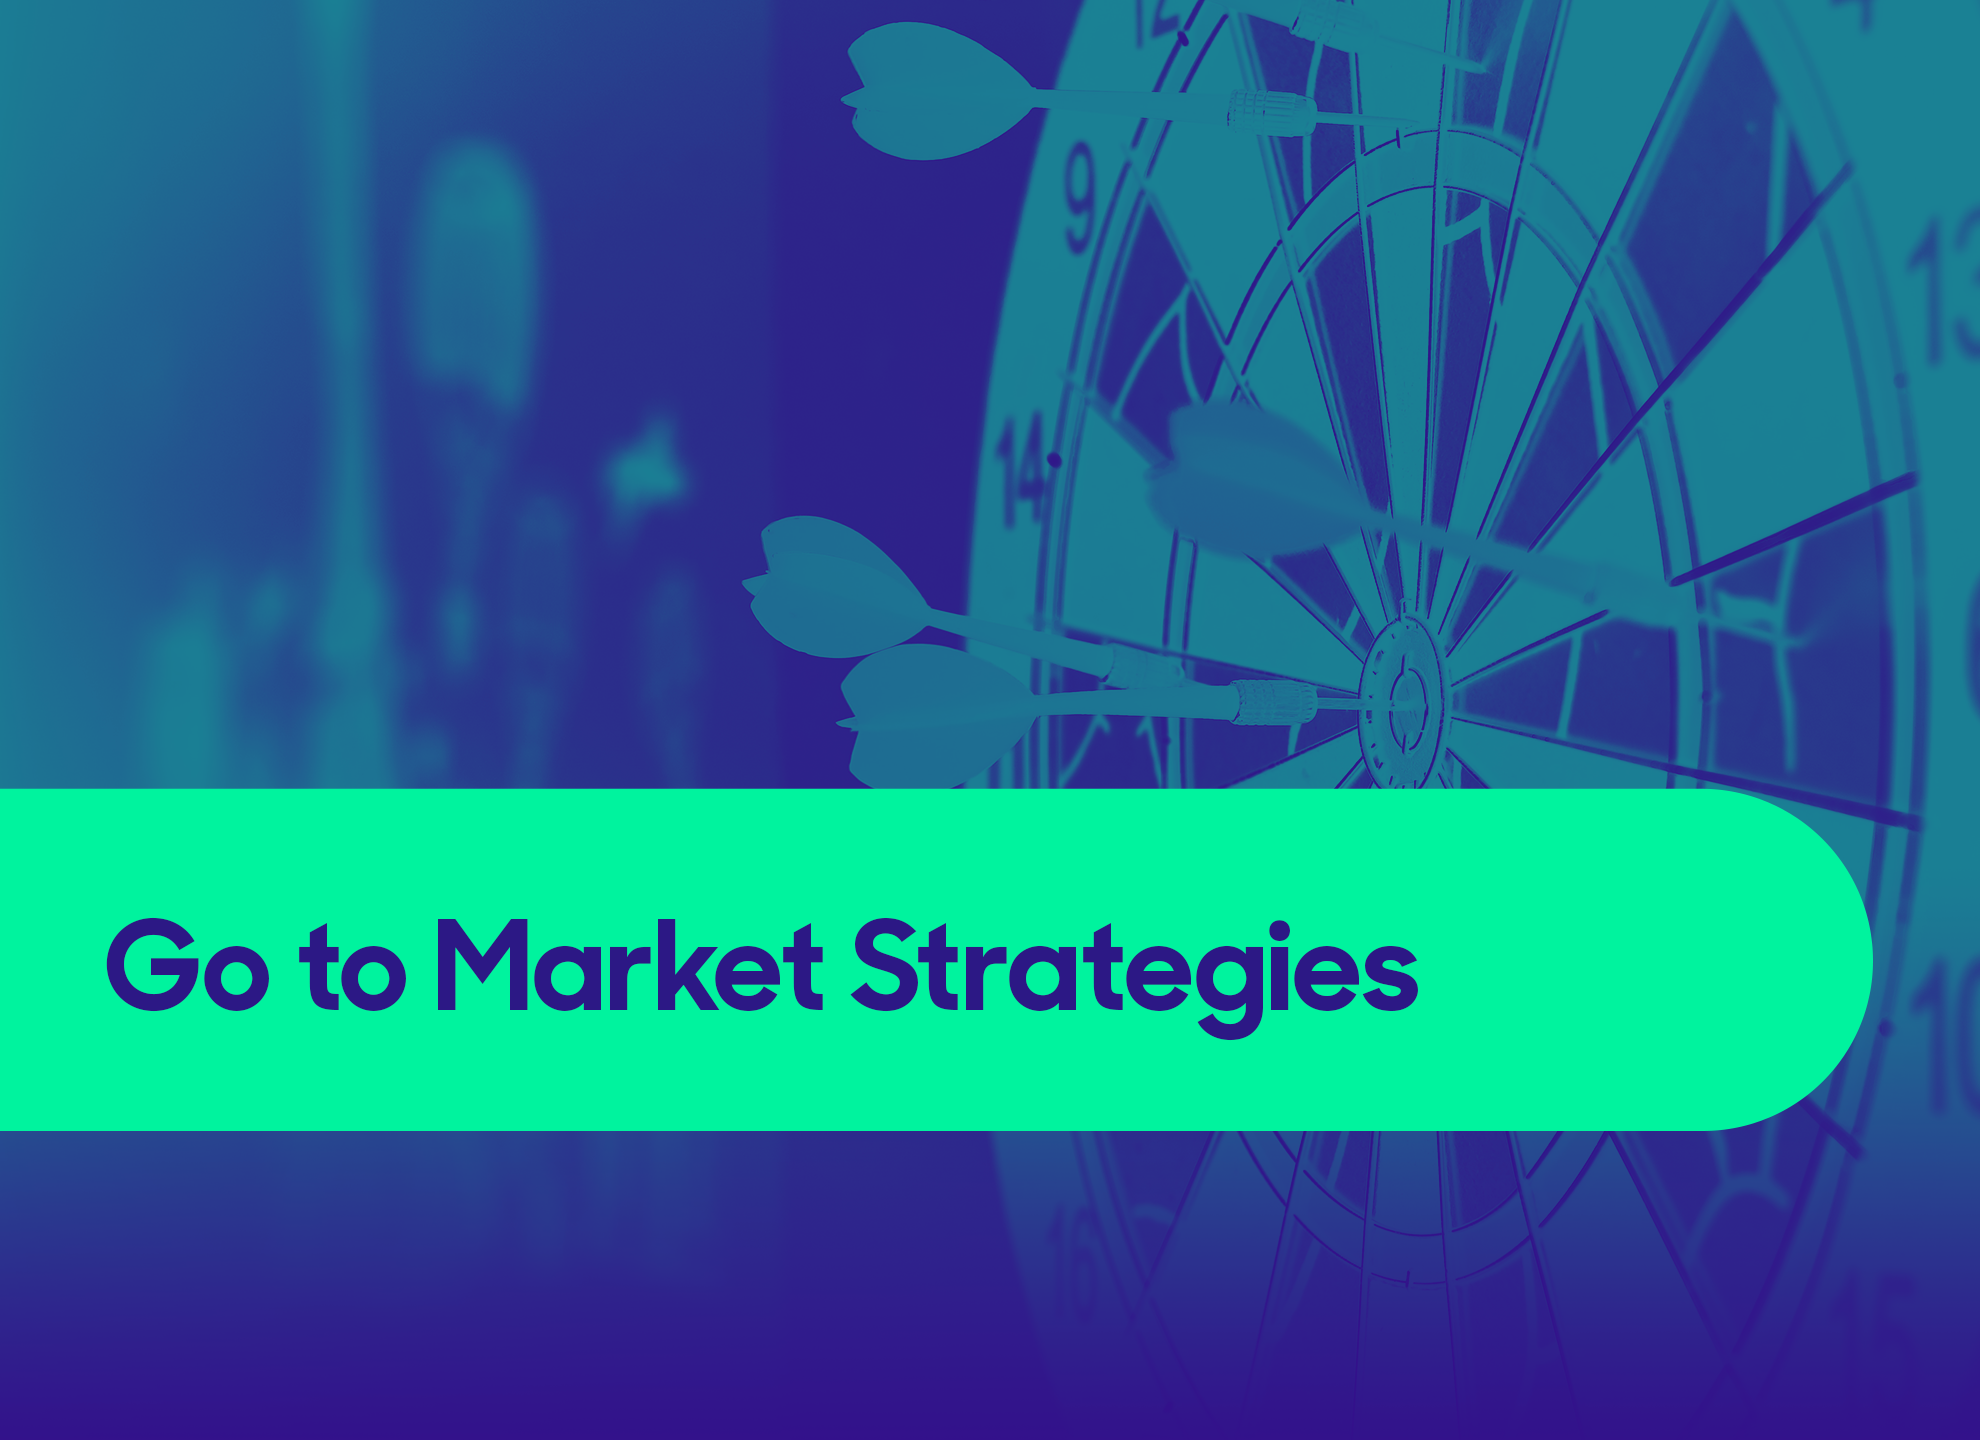 Go to Market Strategies Thumbnail